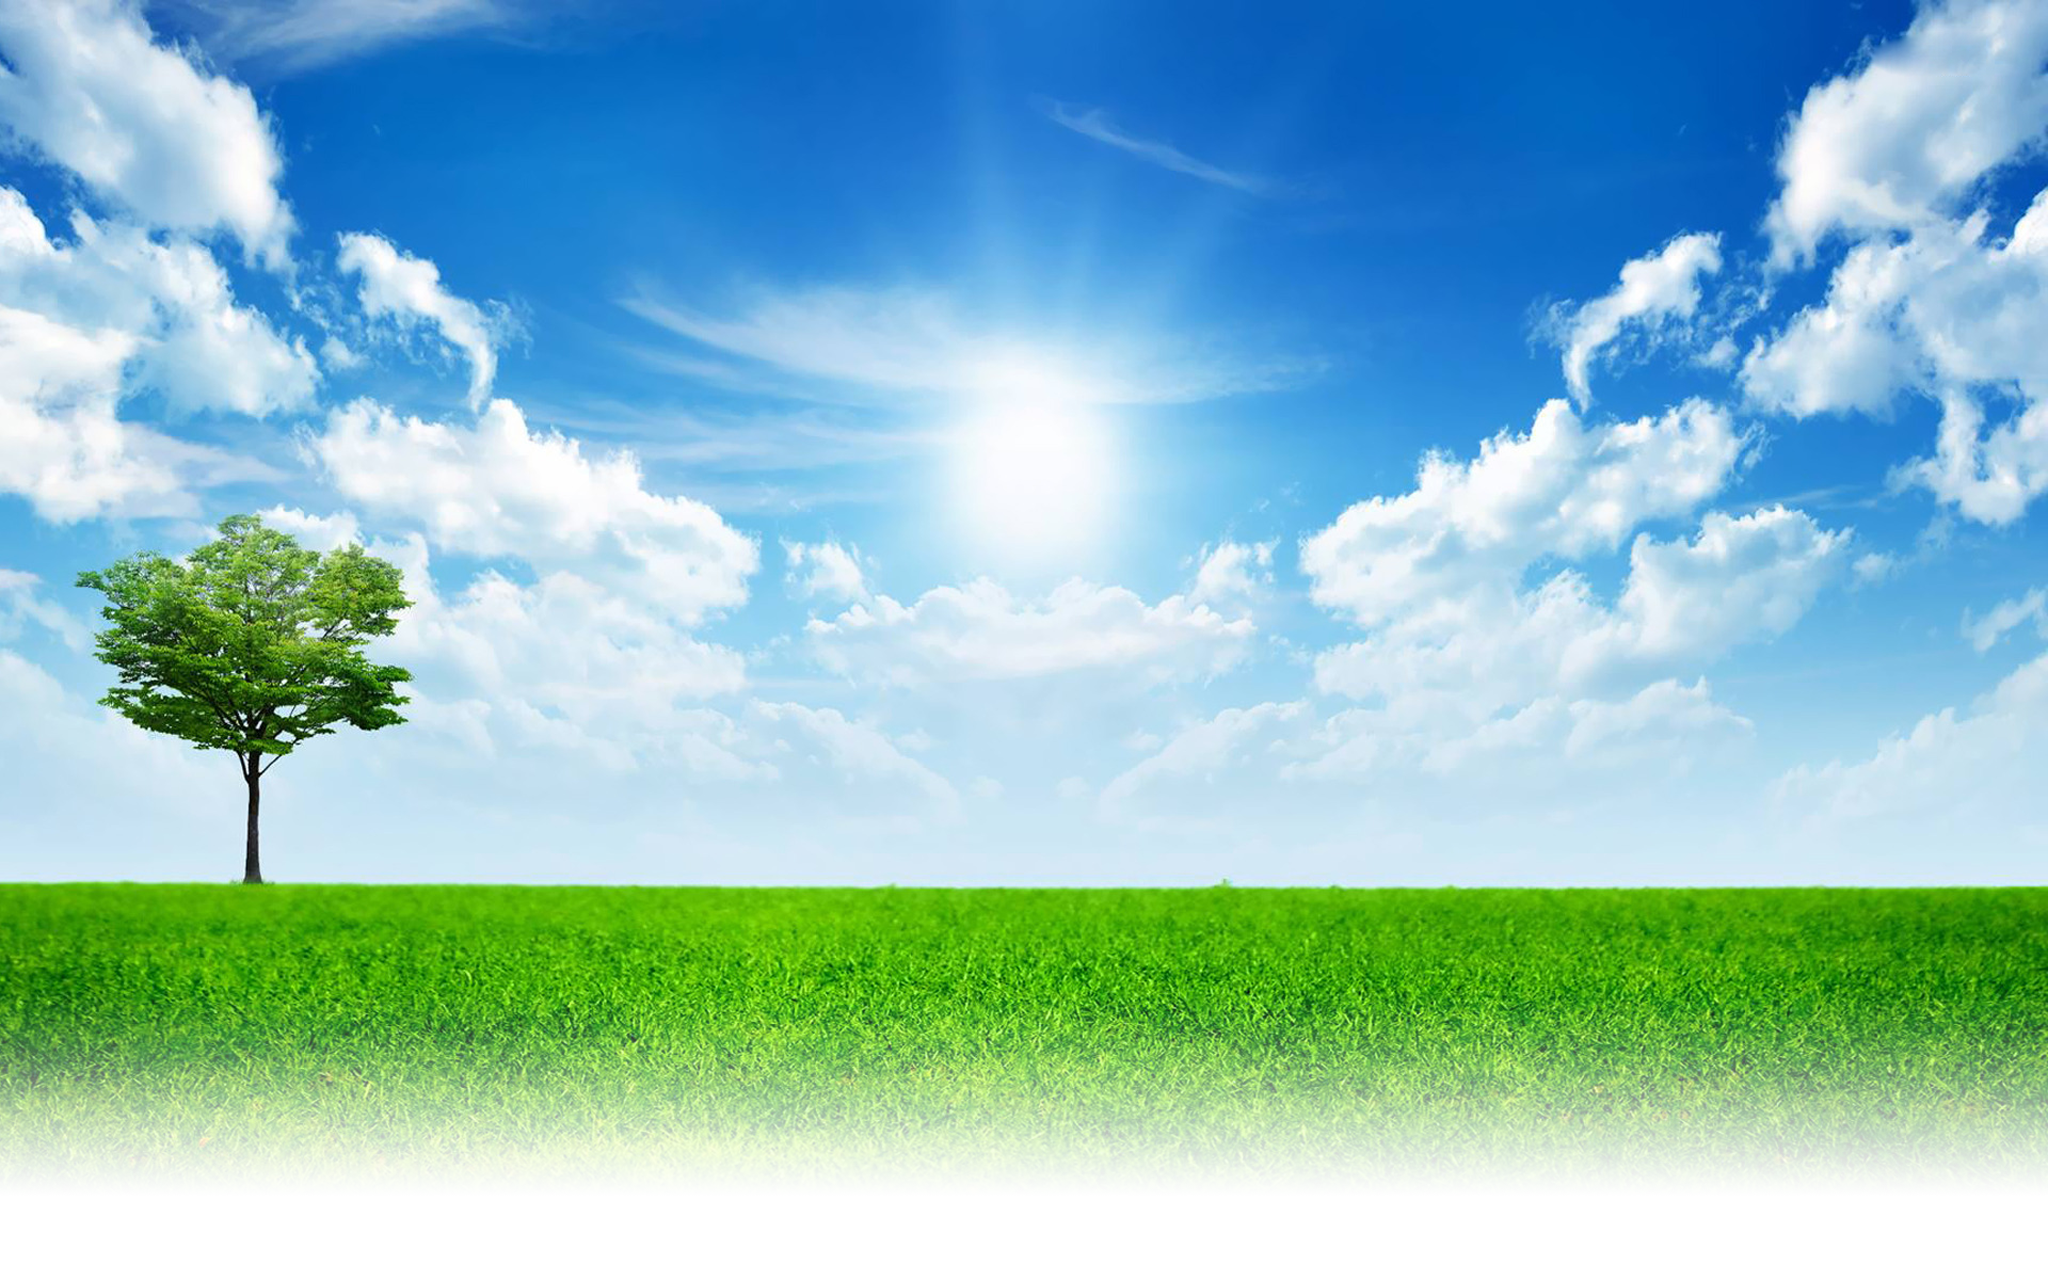 Blue sky png. Sunny transparent images pluspng